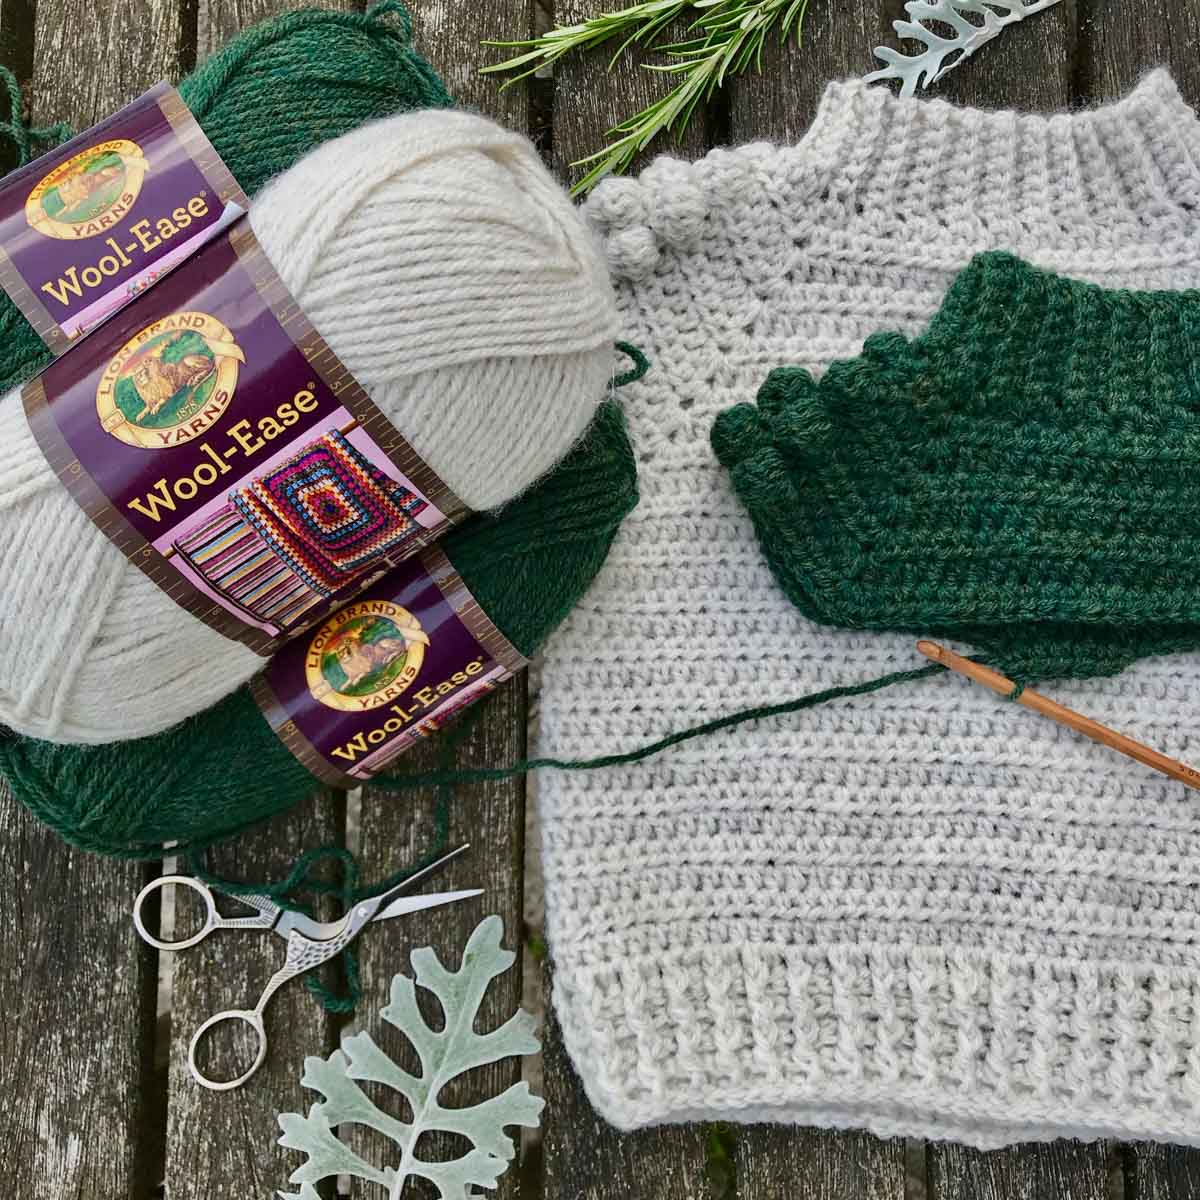 Free crochet pattern for a children's pullover sweater made with Lion Brand Wool-Ease yarn in colors Natural Heather and Forest Green Heather.